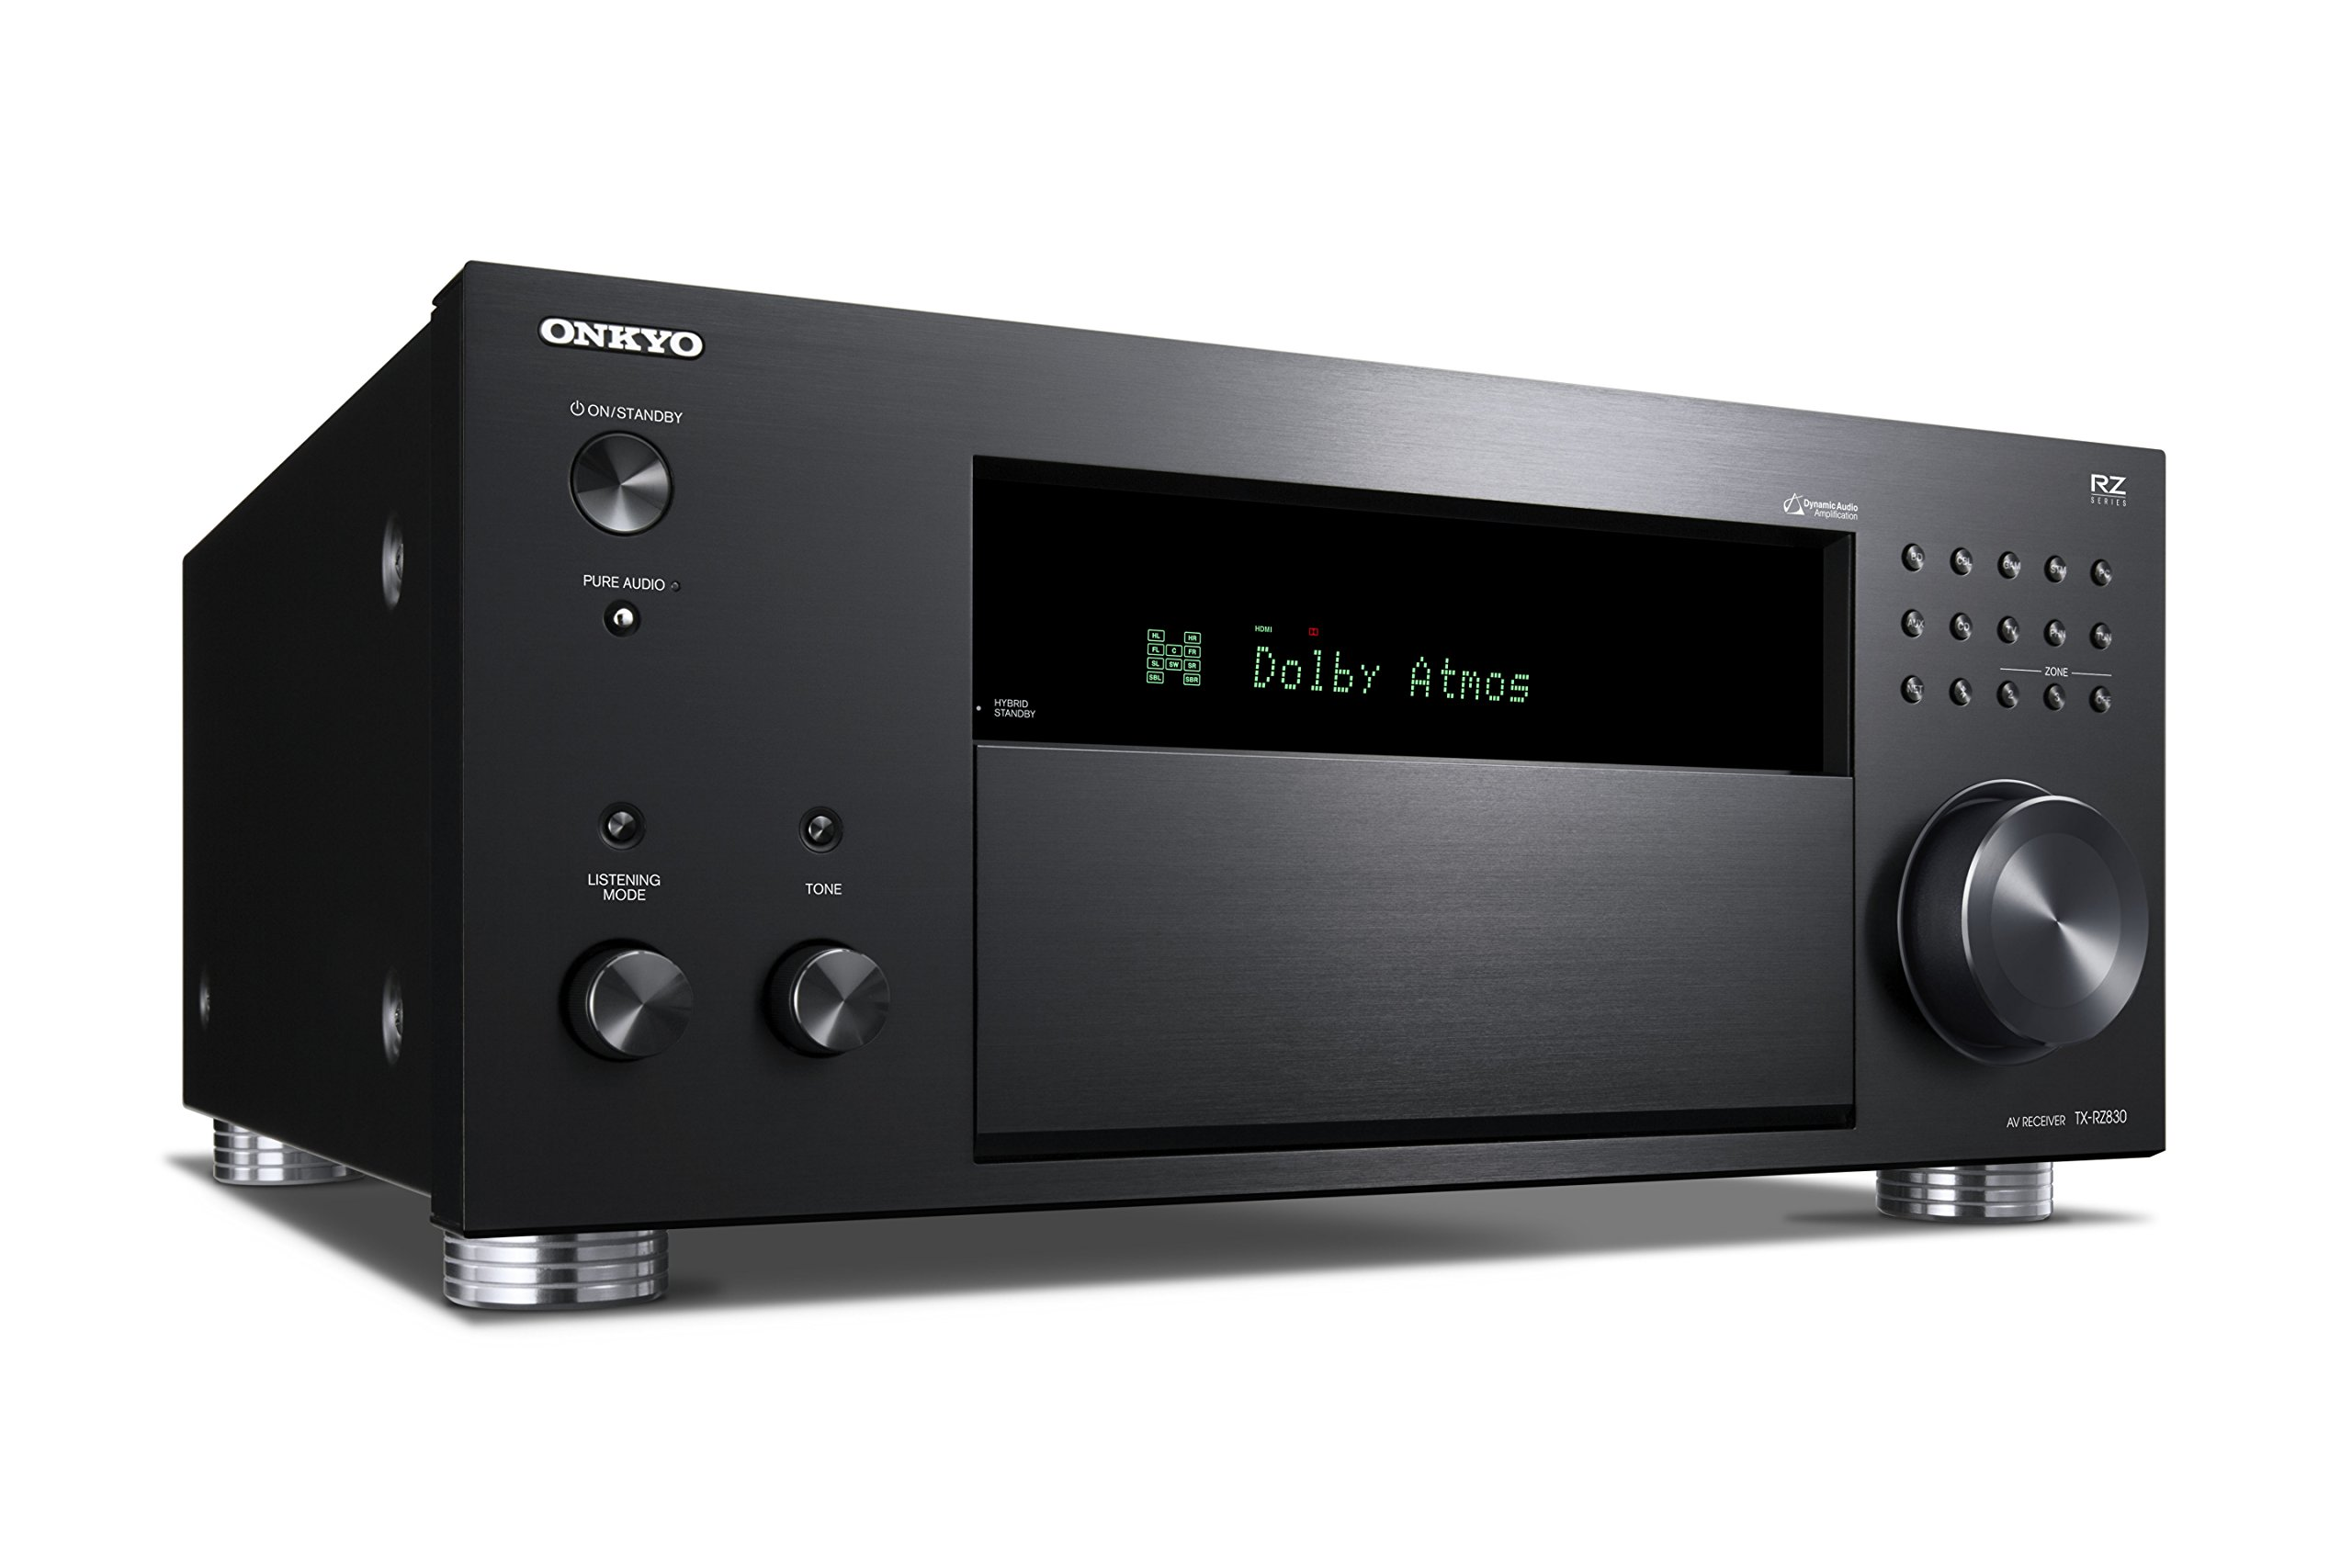 Onkyo TX-RZ830 9.2 Channel 4K Network A/V Receiver Black by Onkyo (Image #5)